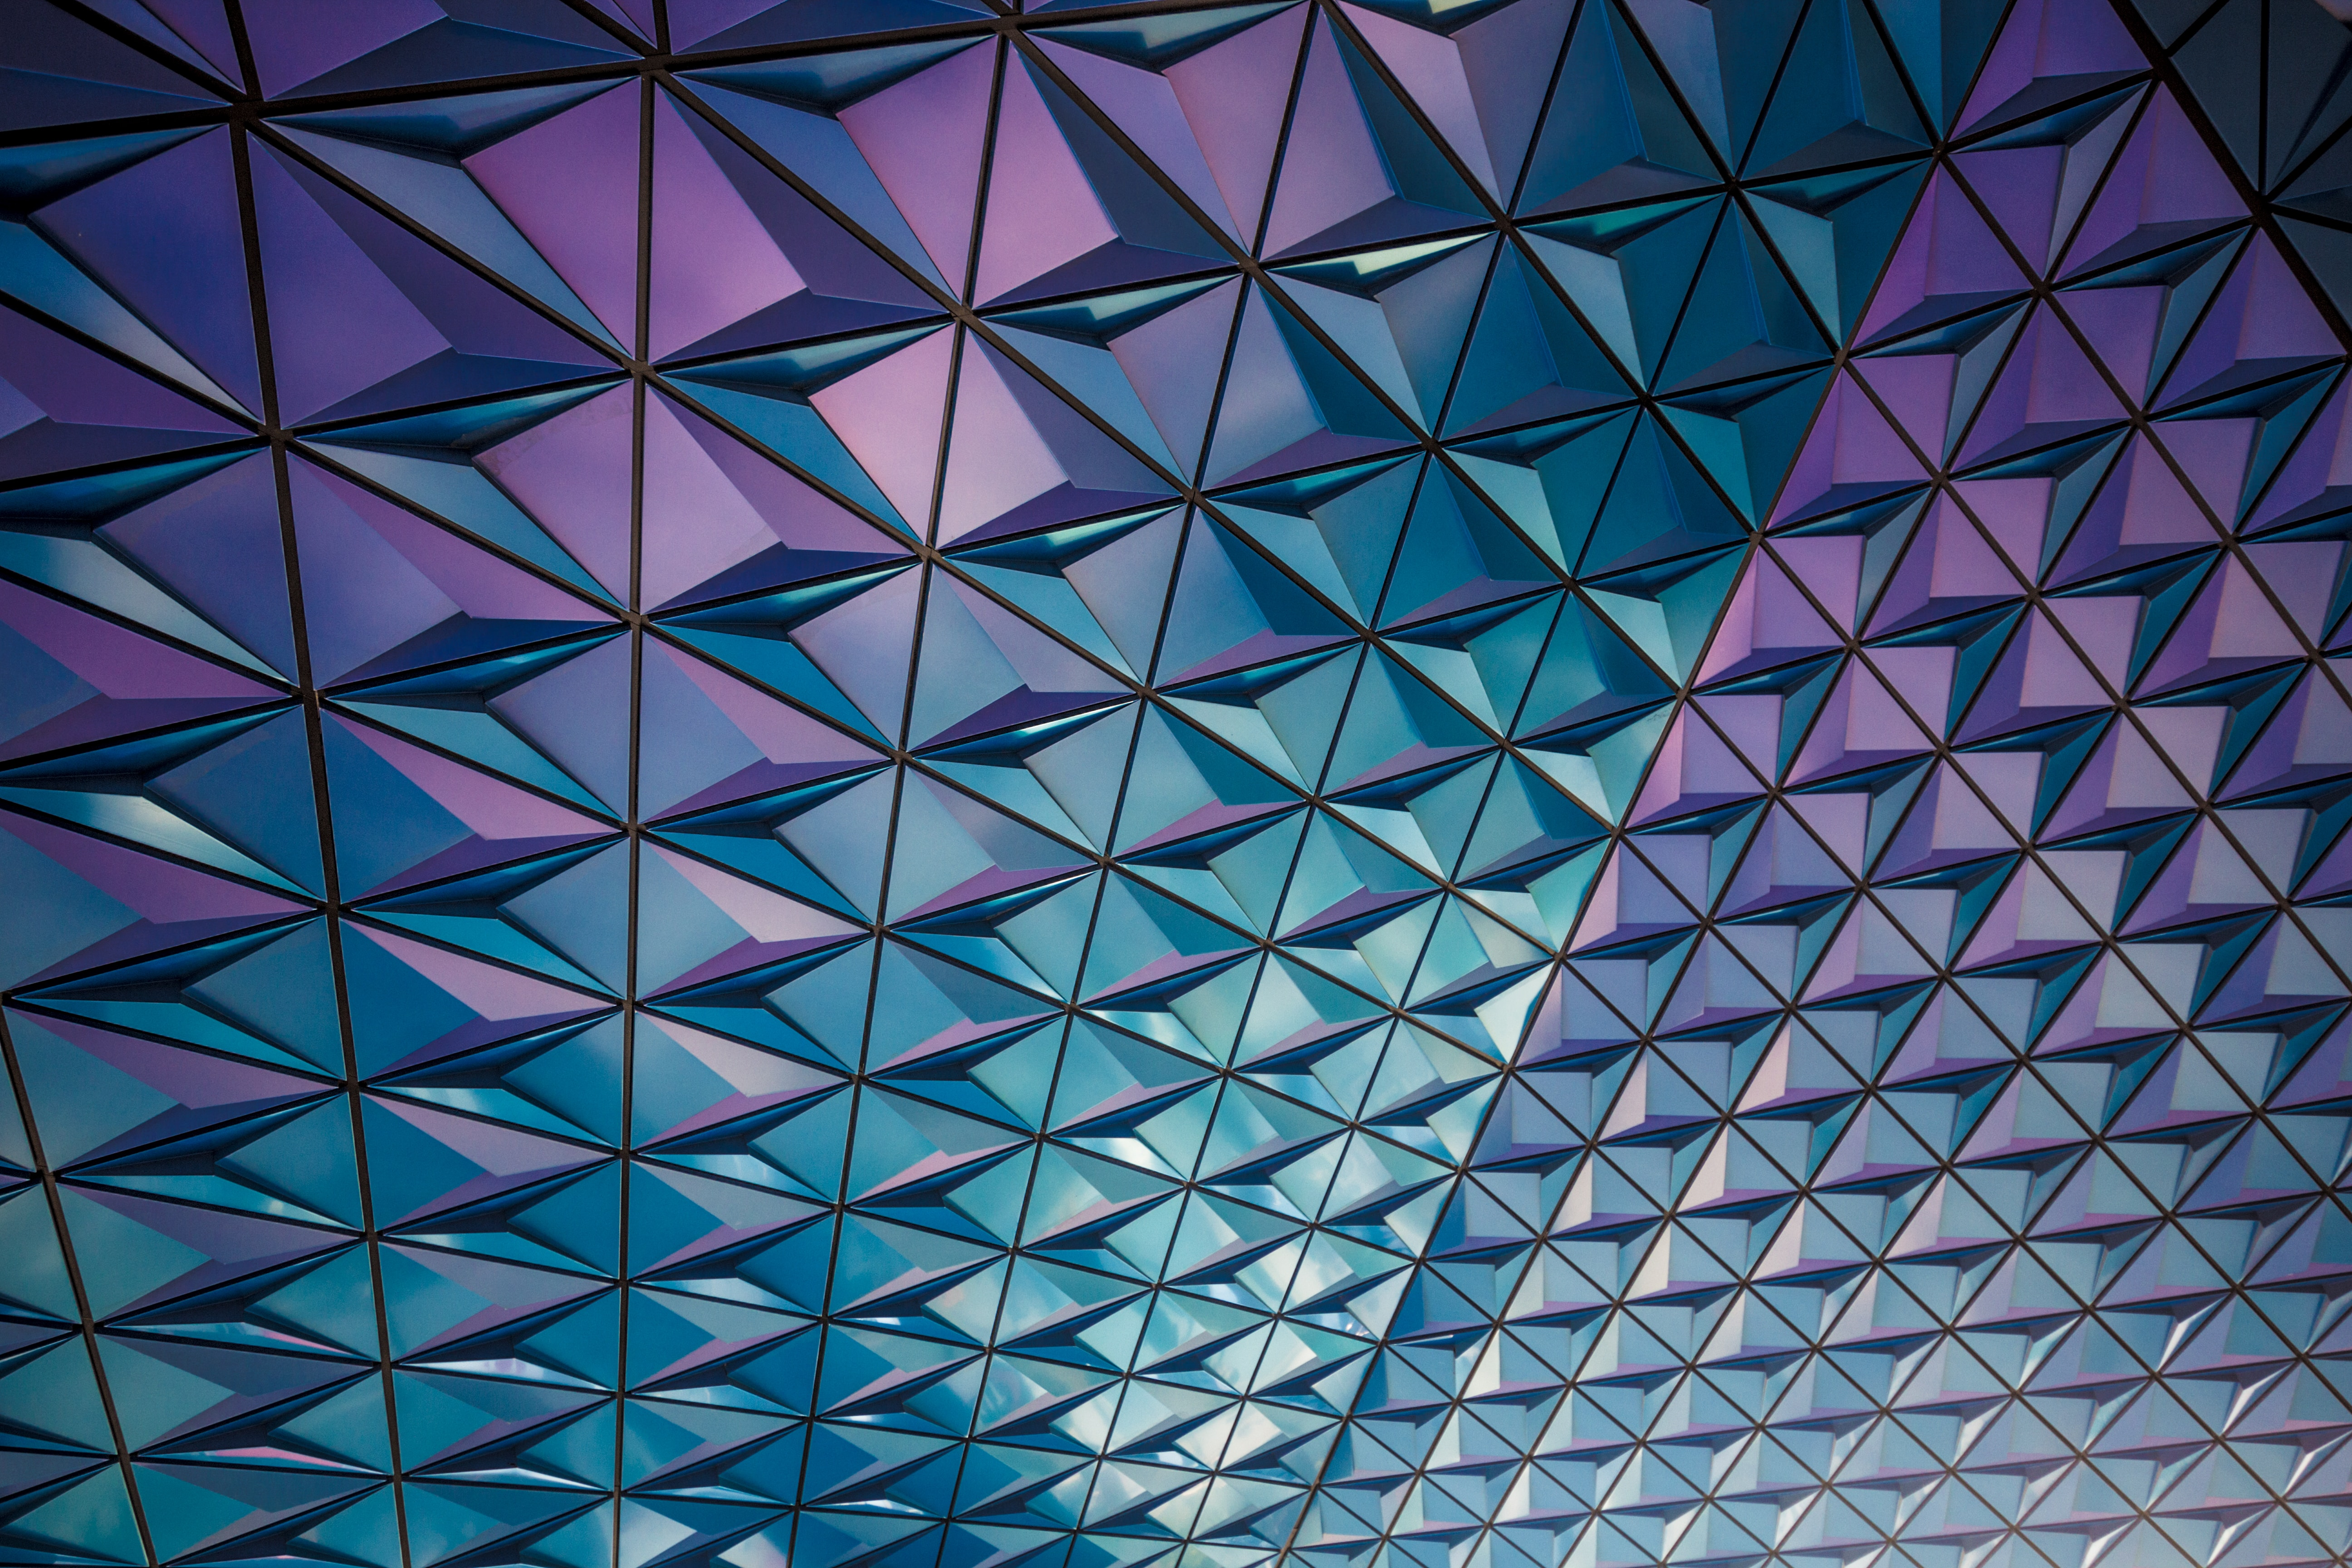 5 Days of Awesome Wallpapers Geometric and Architectural 5184x3456